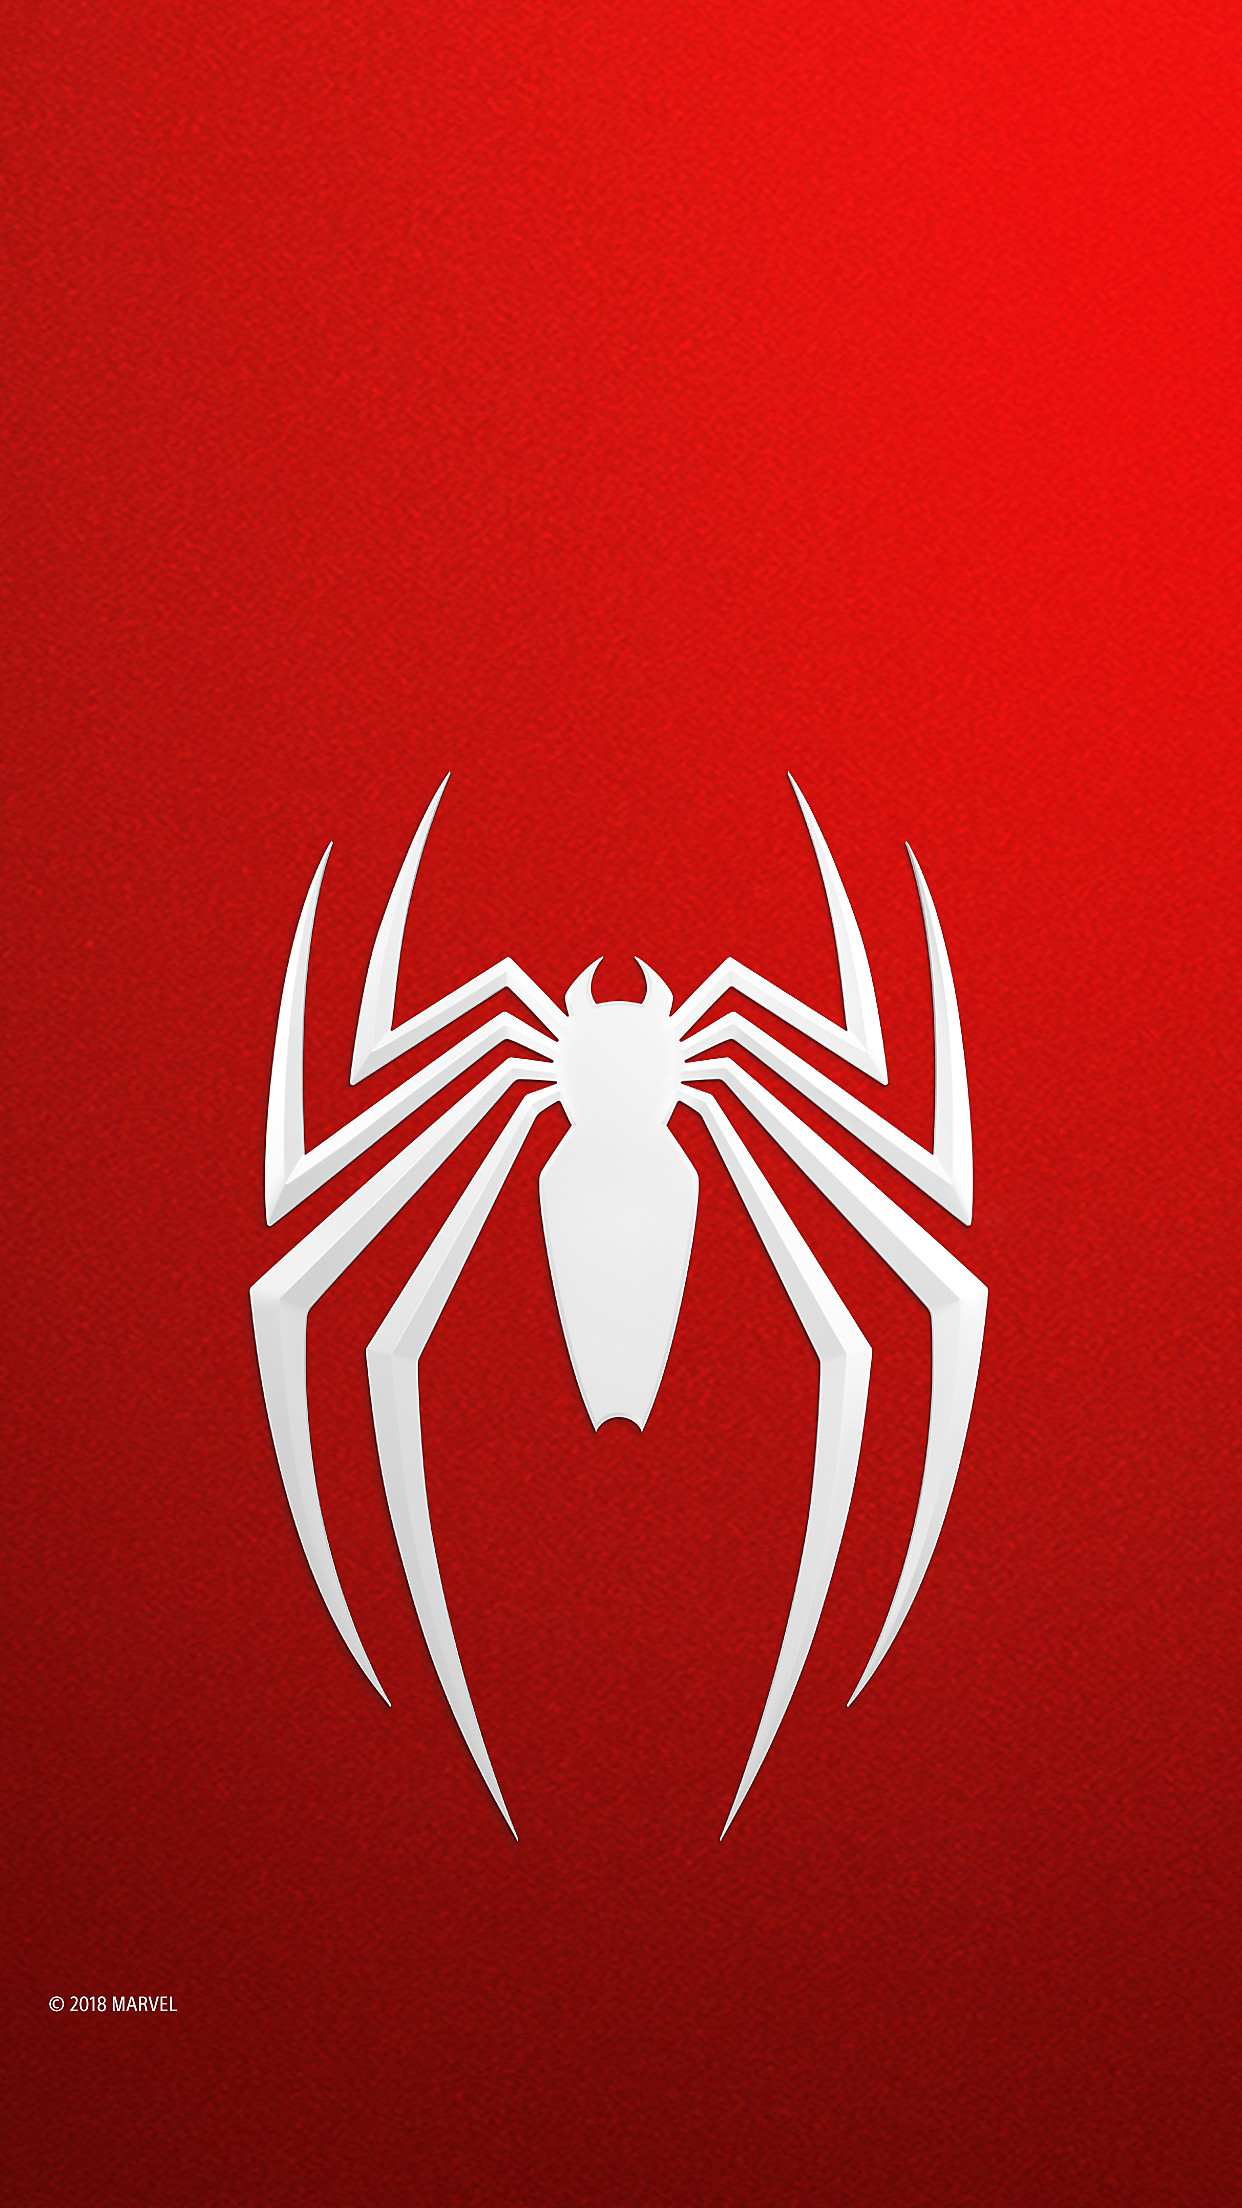 Marvel's Spider-Man mobile wallpaper 1